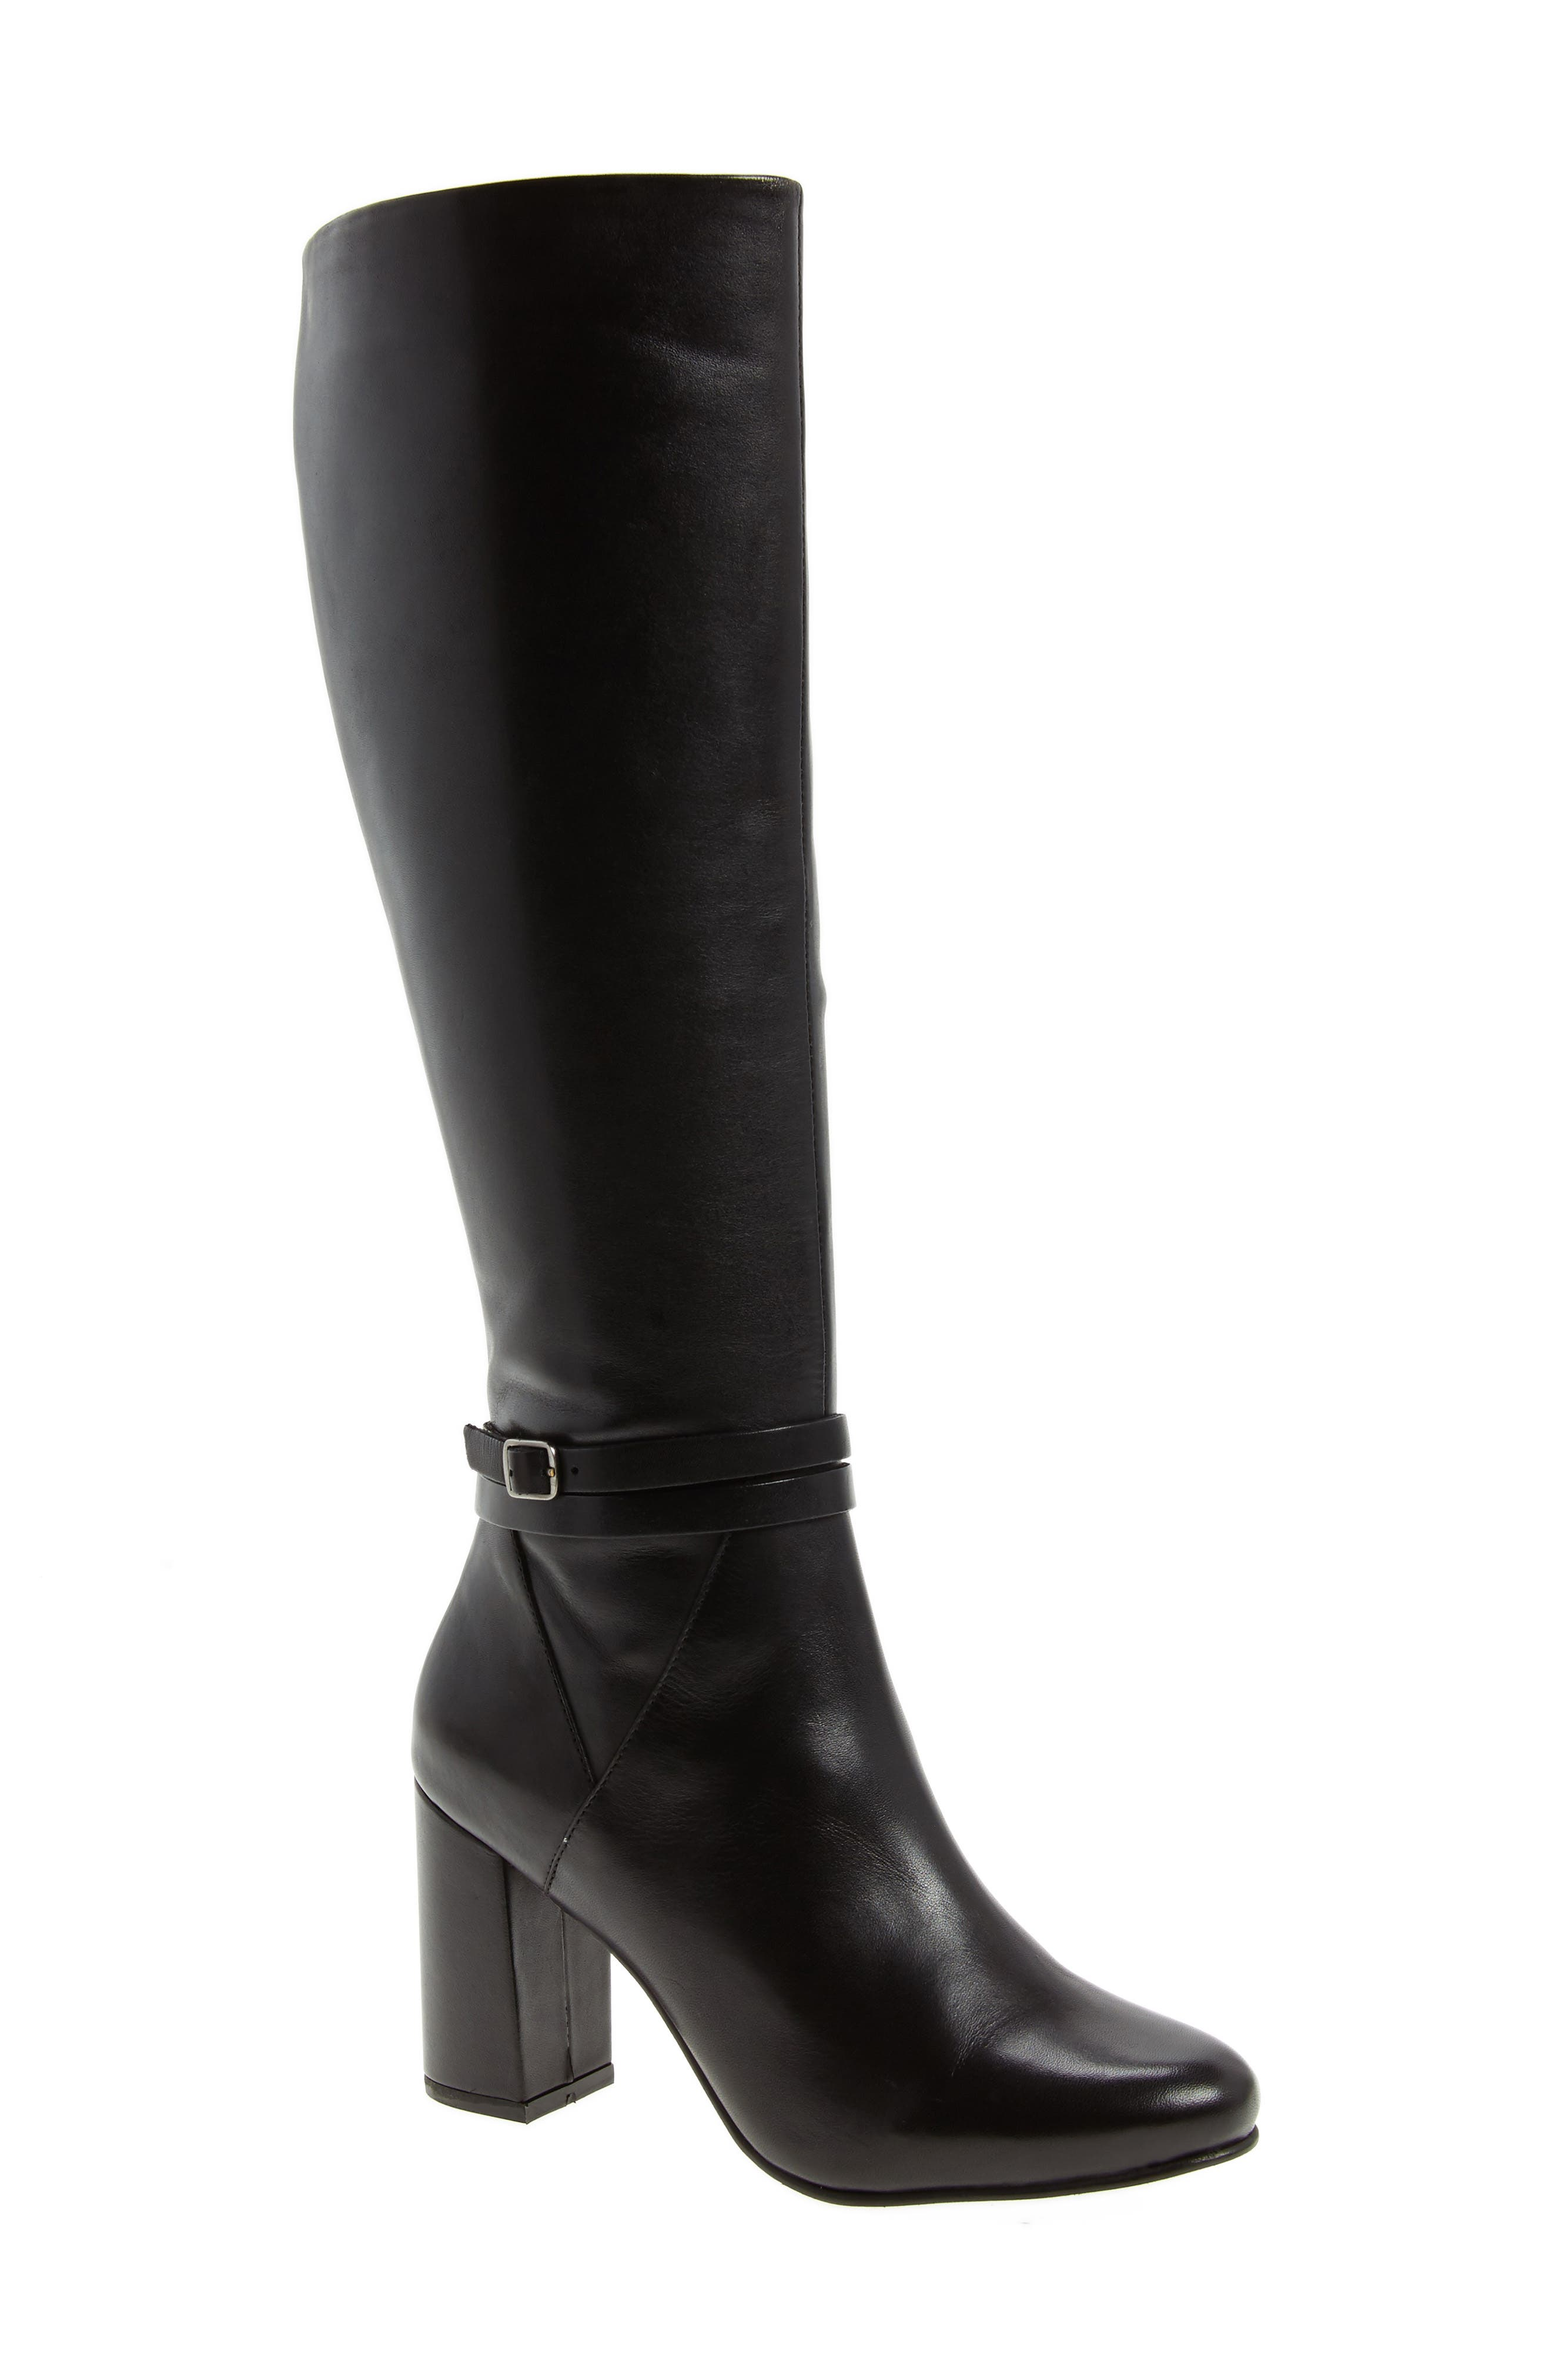 Ovation Knee High Boot,                             Main thumbnail 1, color,                             001